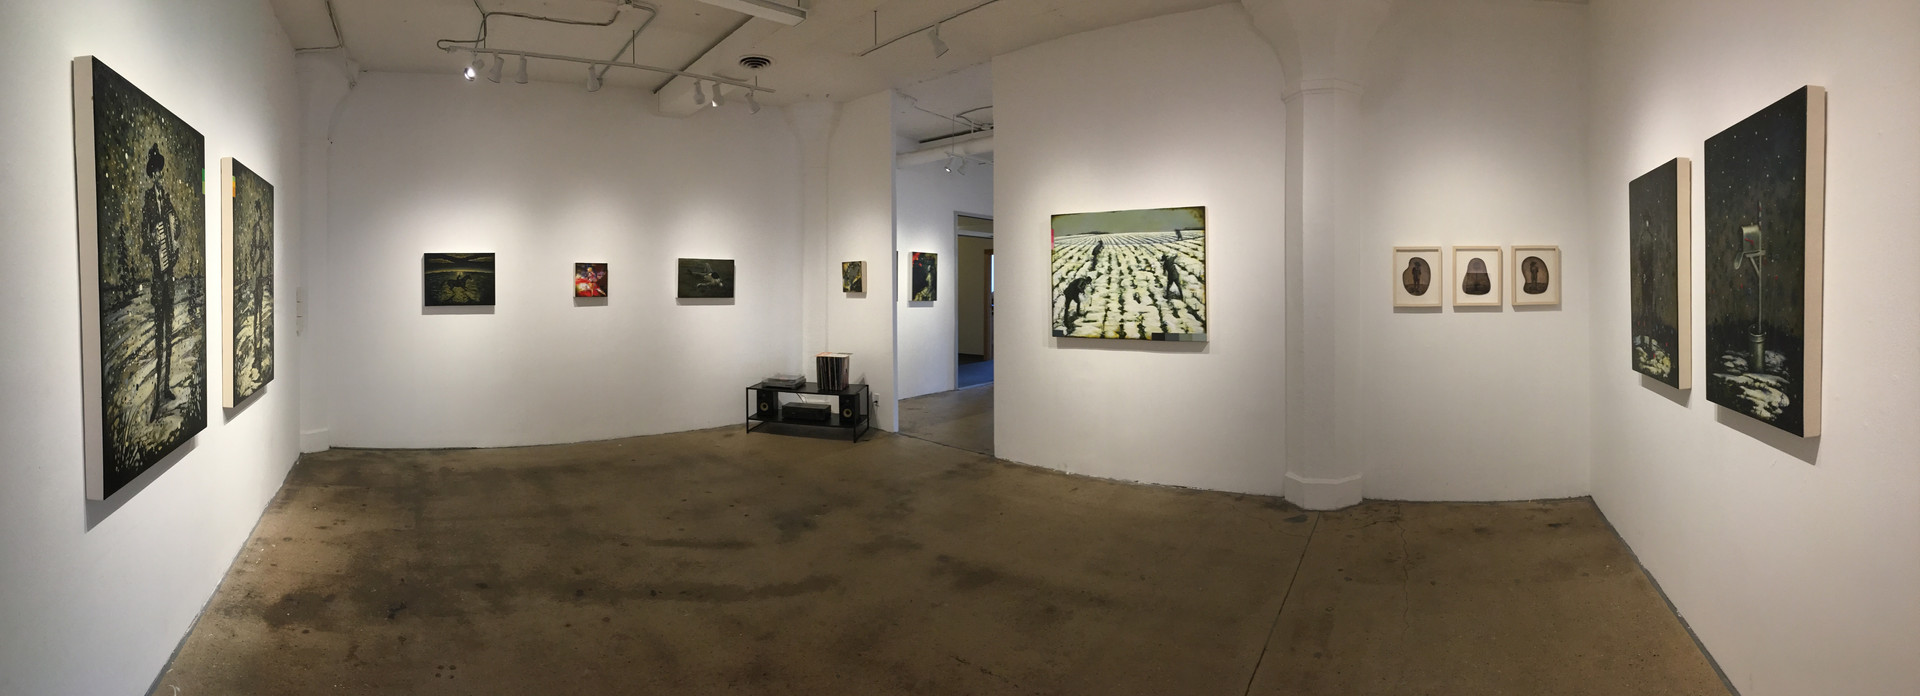 main gallery installation view 2